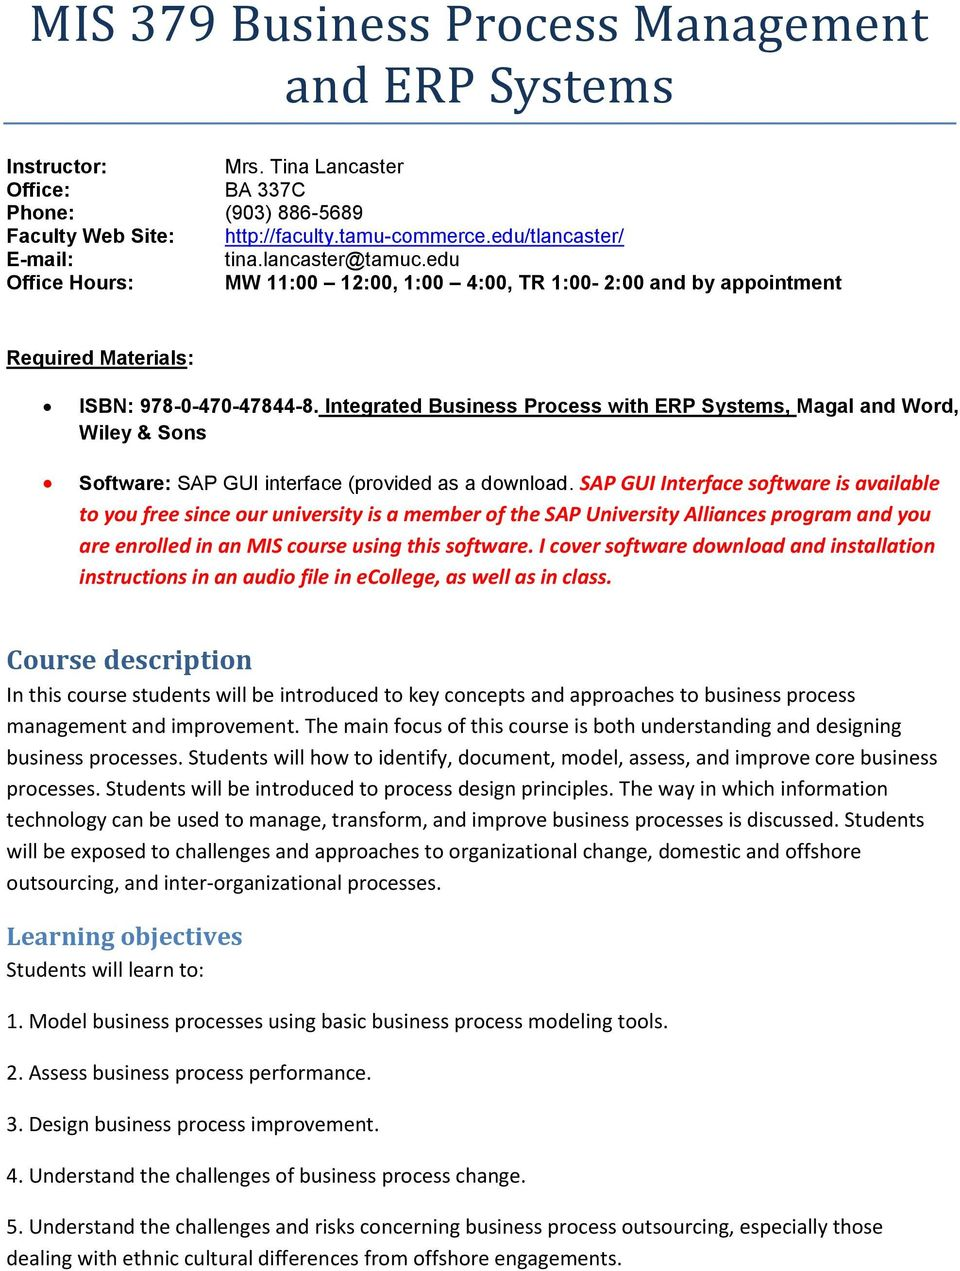 MIS 379 Business Process Management and ERP Systems - PDF